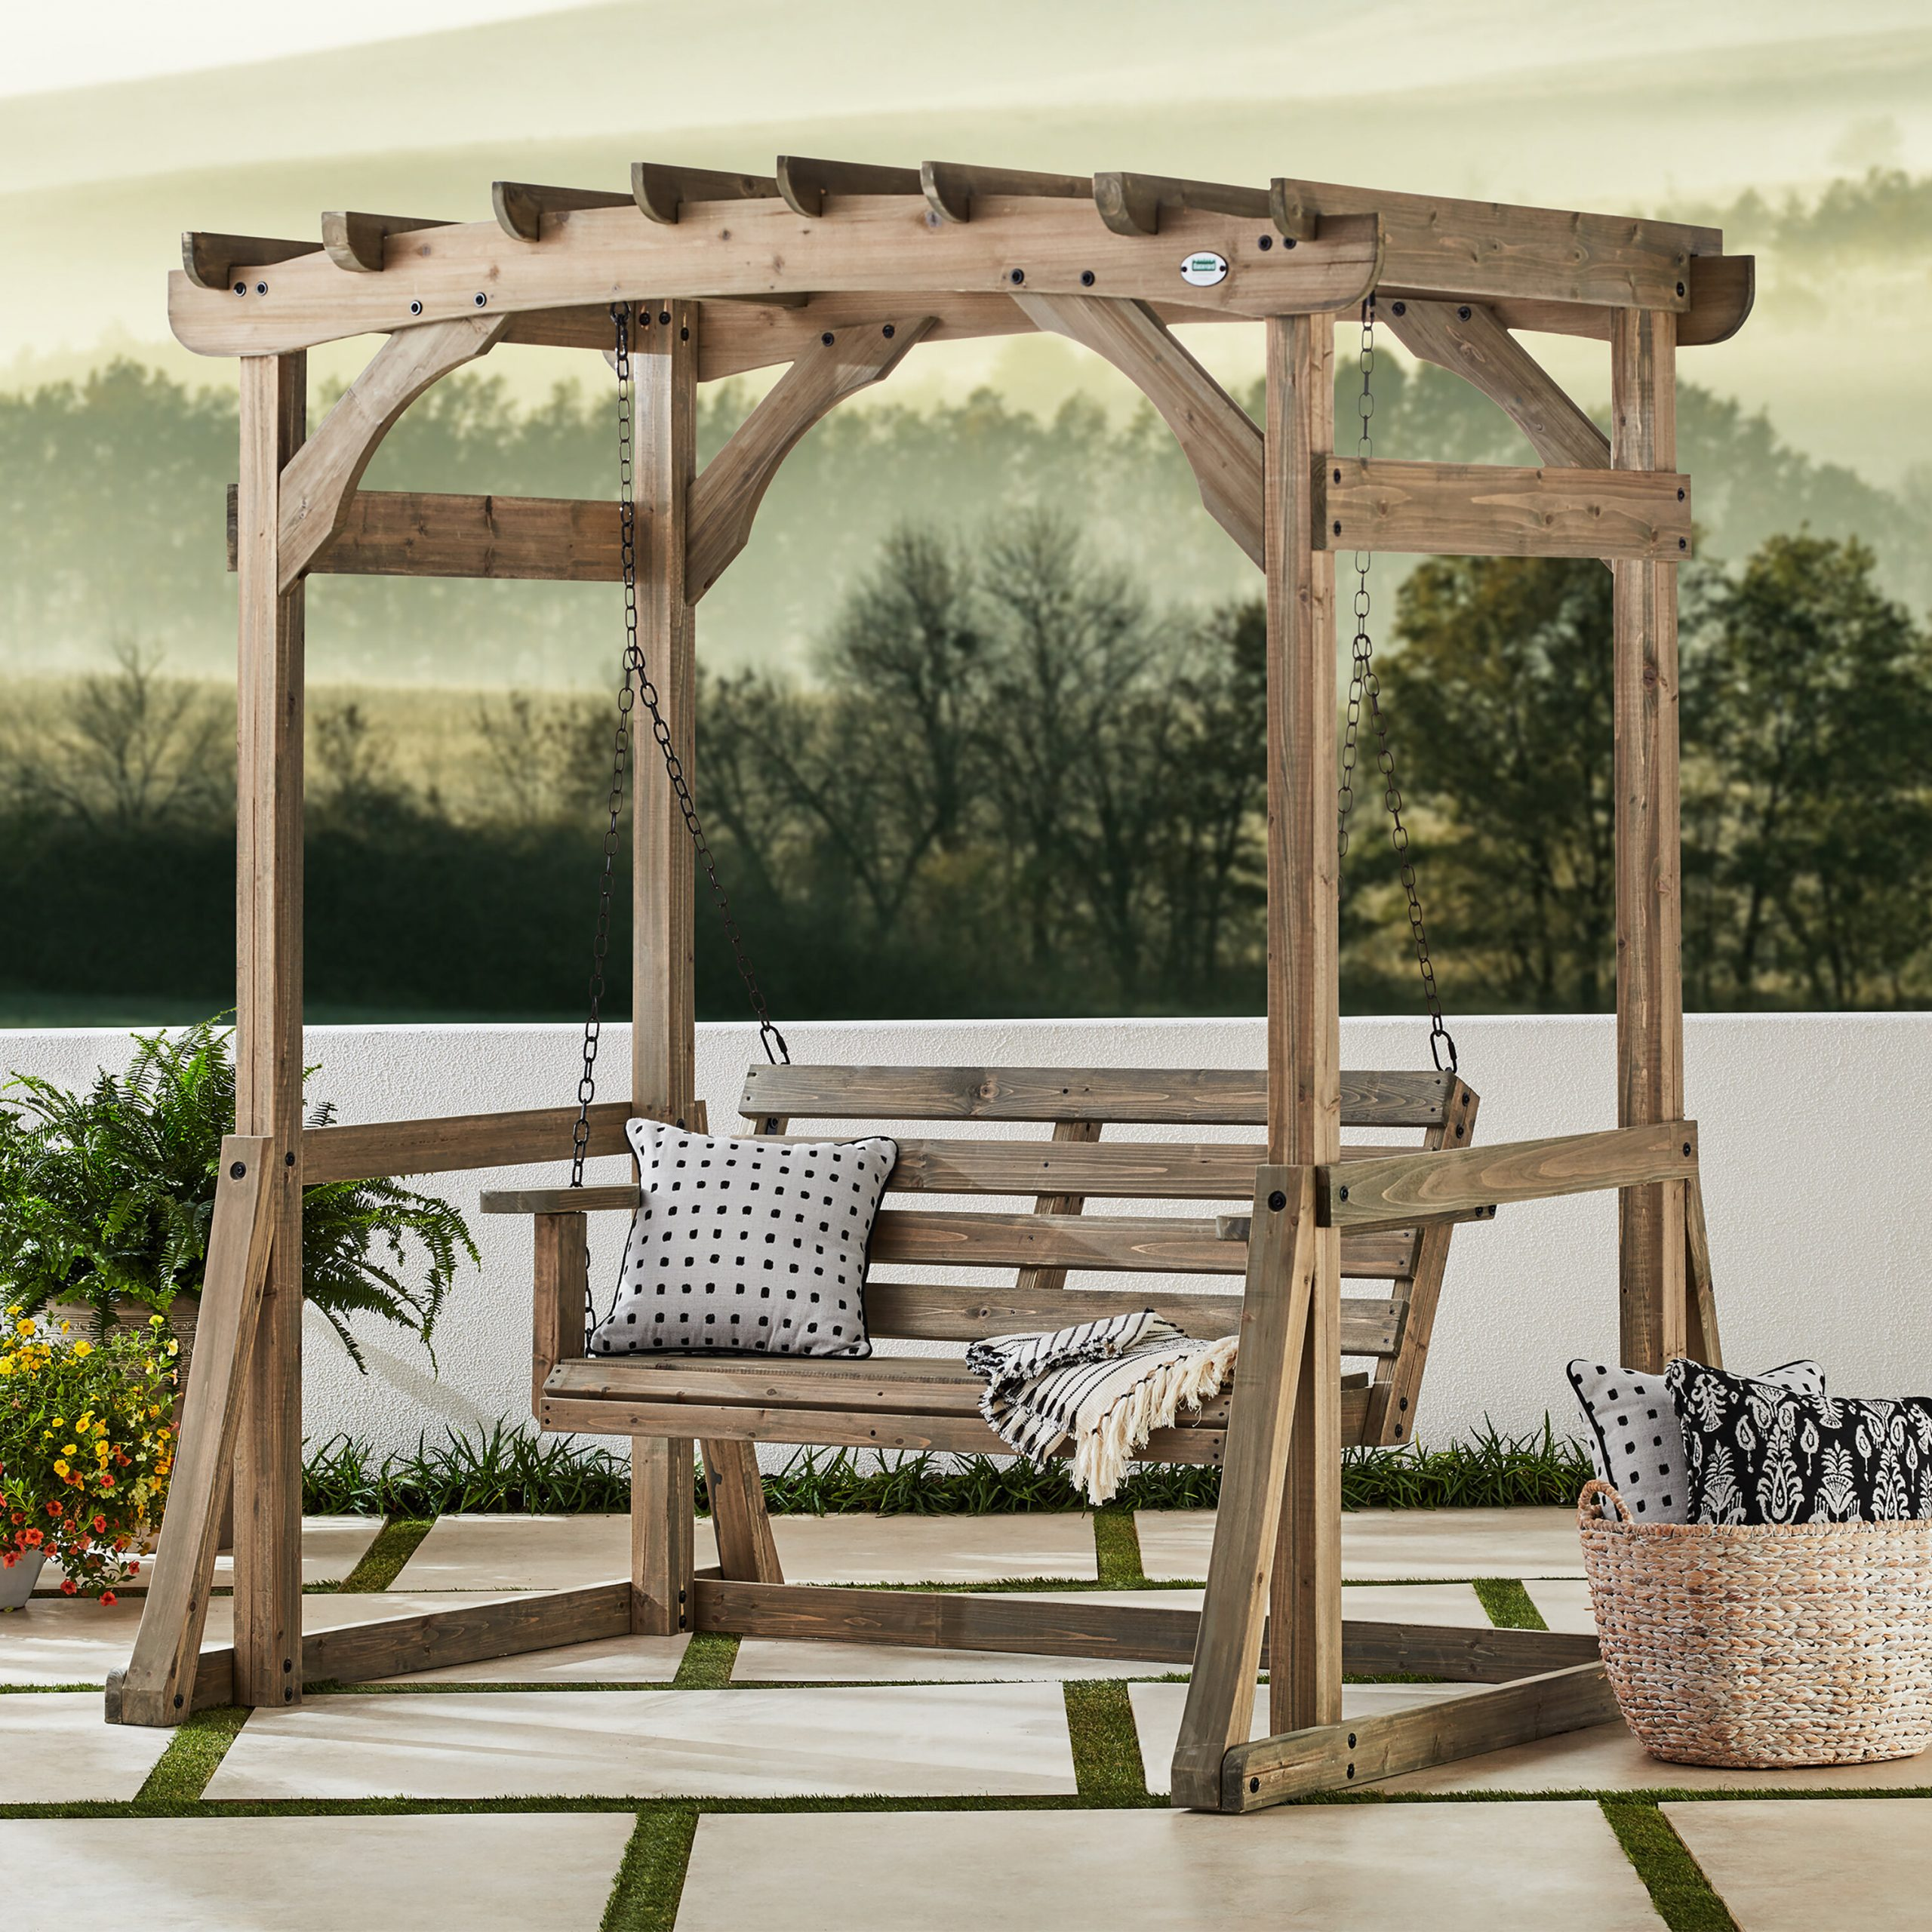 Odessa Pergola Porch Swing With Stand Intended For Pergola Porch Swings With Stand (View 10 of 26)